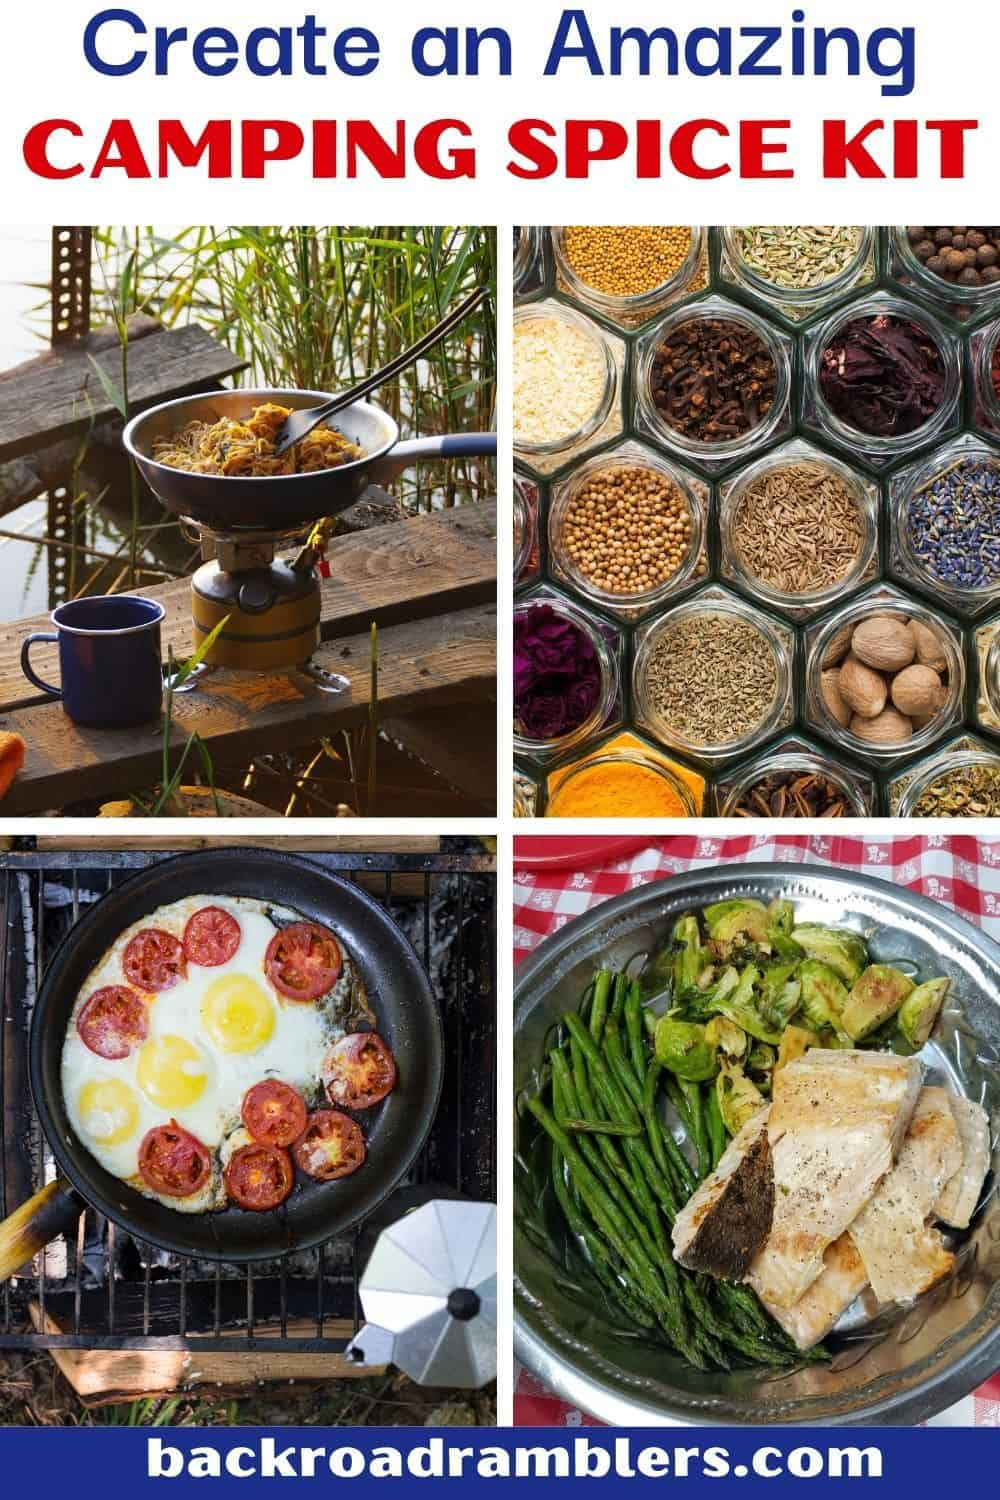 A collage of photos featuring camping meals. Caption reads: Create an Amazing Camping Spice Kit